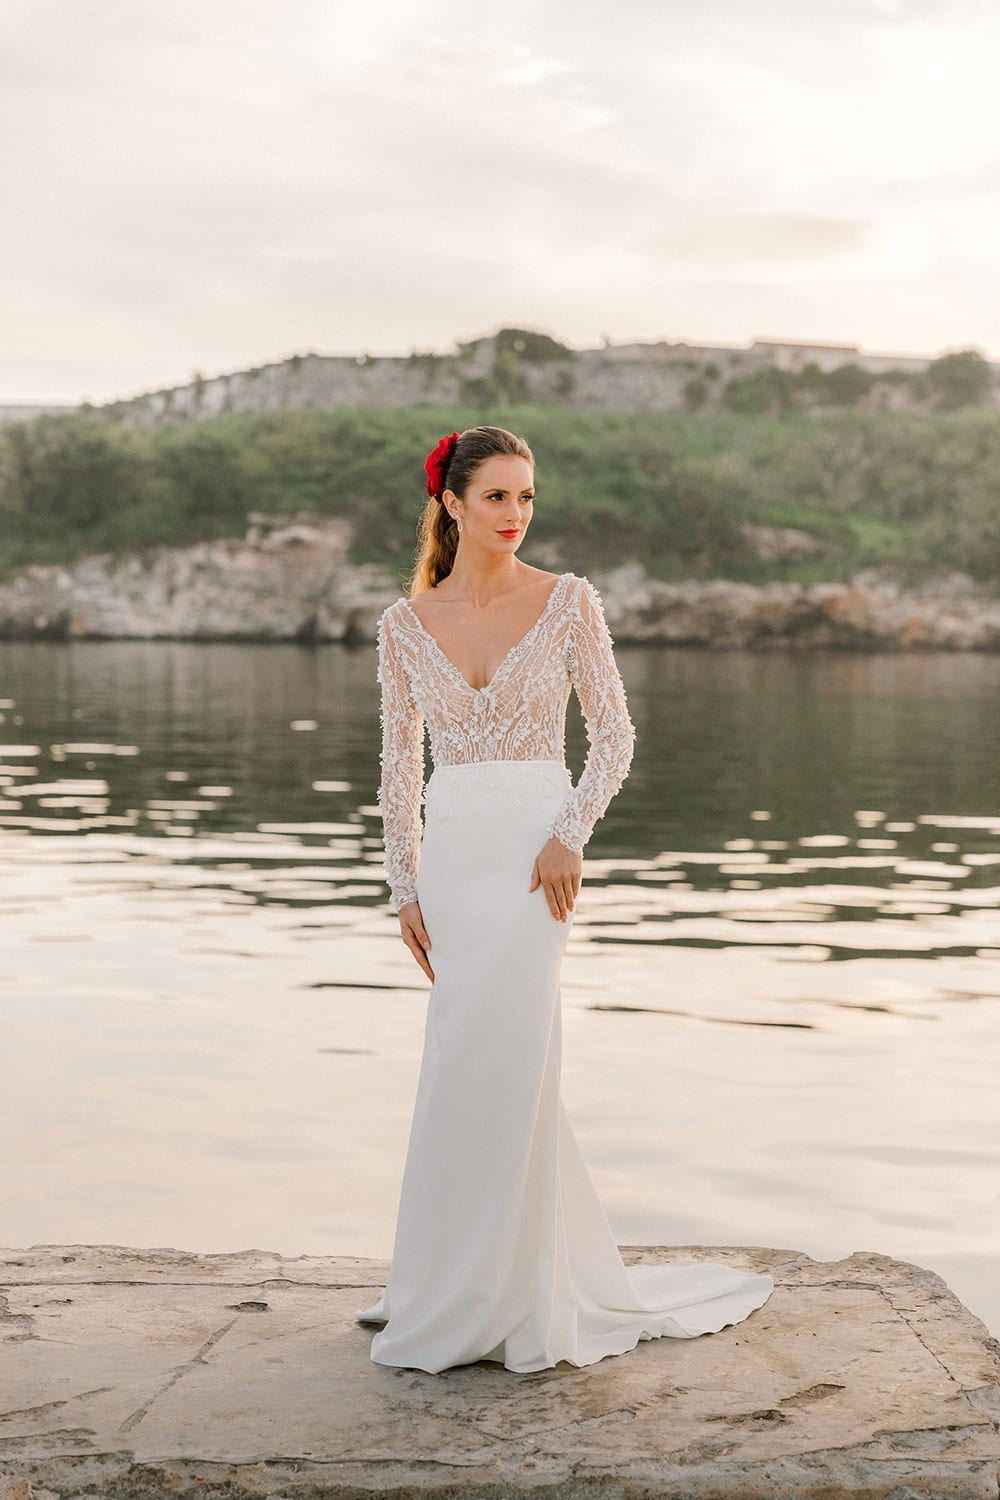 Model wearing Vinka Design Angela Wedding Dress, Fitted Wedding Gown with Lace Bodice worn next to the water in Havana Cuba